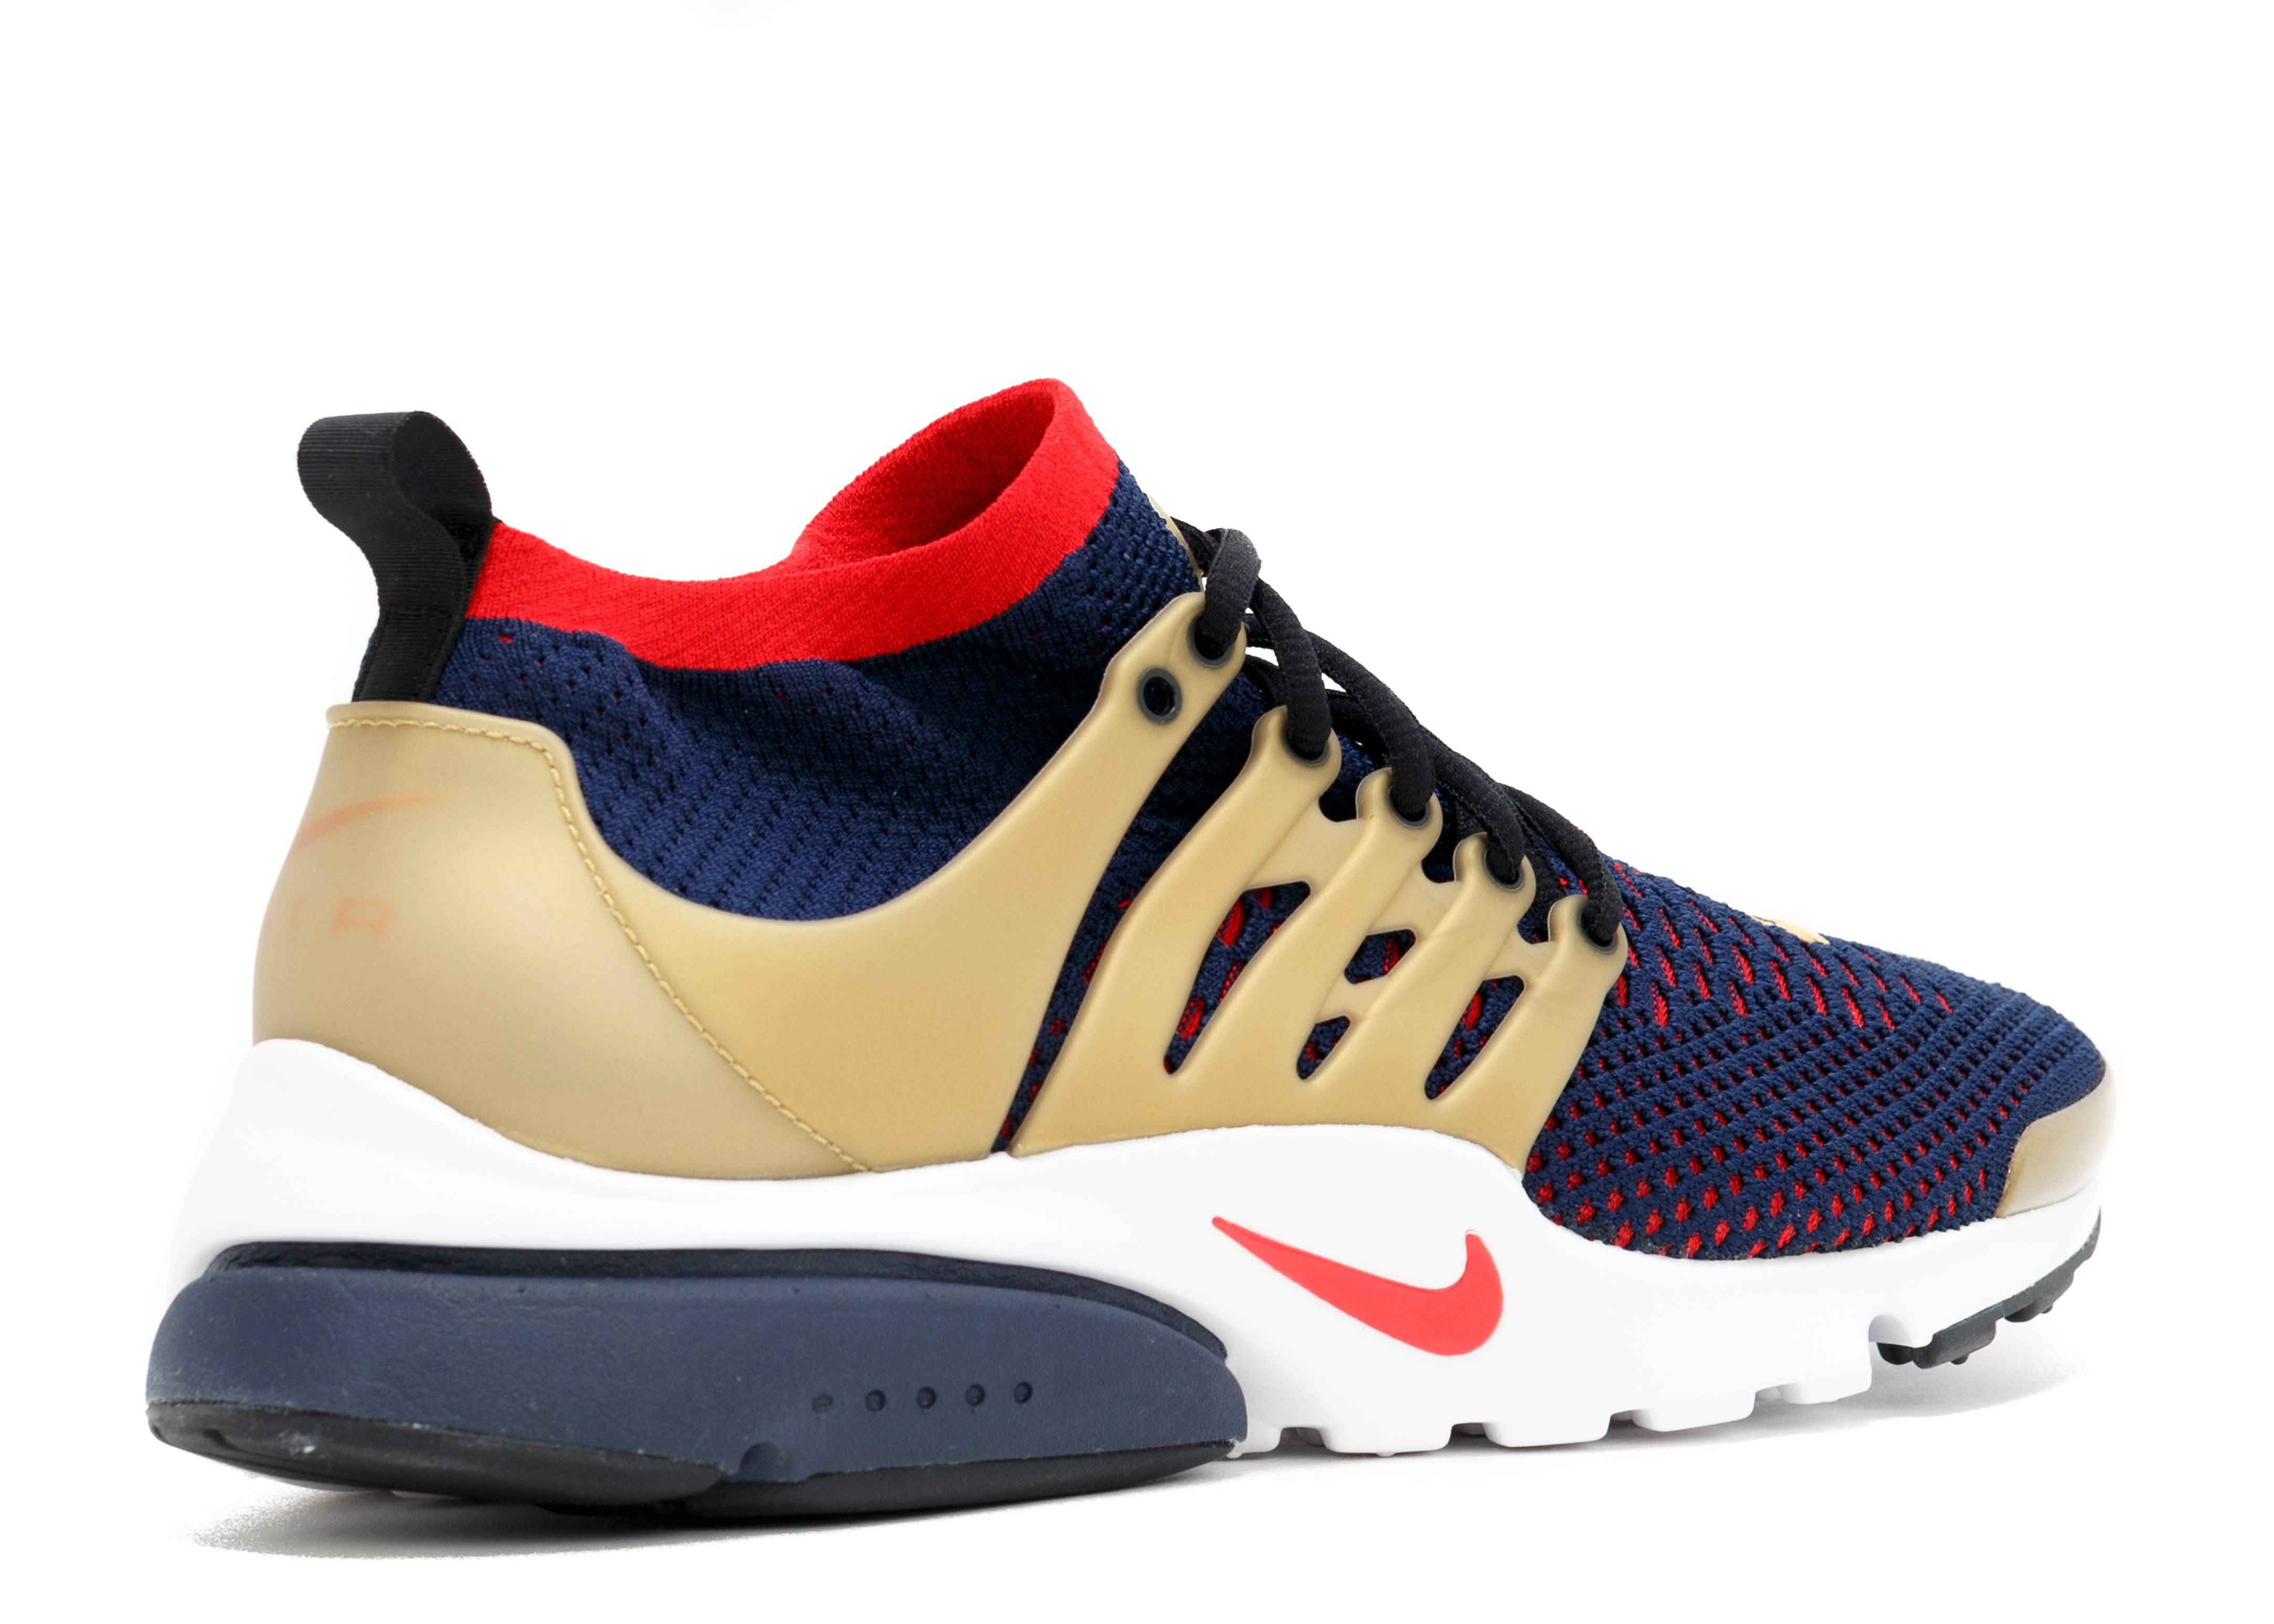 air presto flyknit ultra olympic nike 835570 406. Black Bedroom Furniture Sets. Home Design Ideas